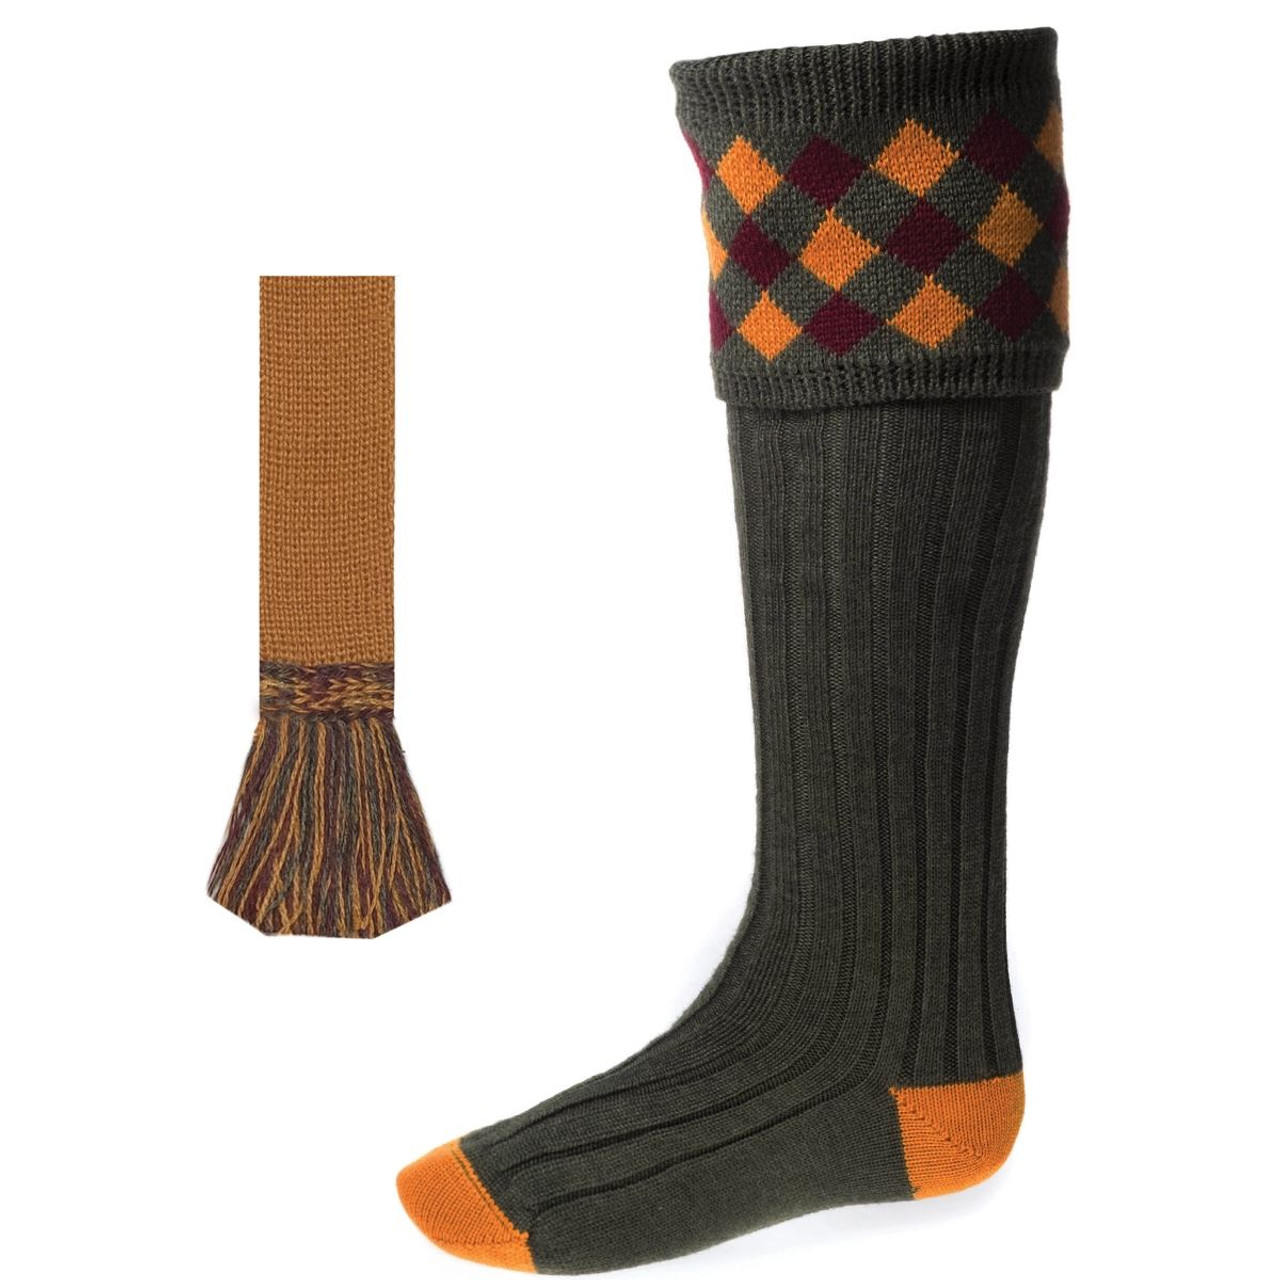 House Of Cheviot Chequers Sock Set With Garter